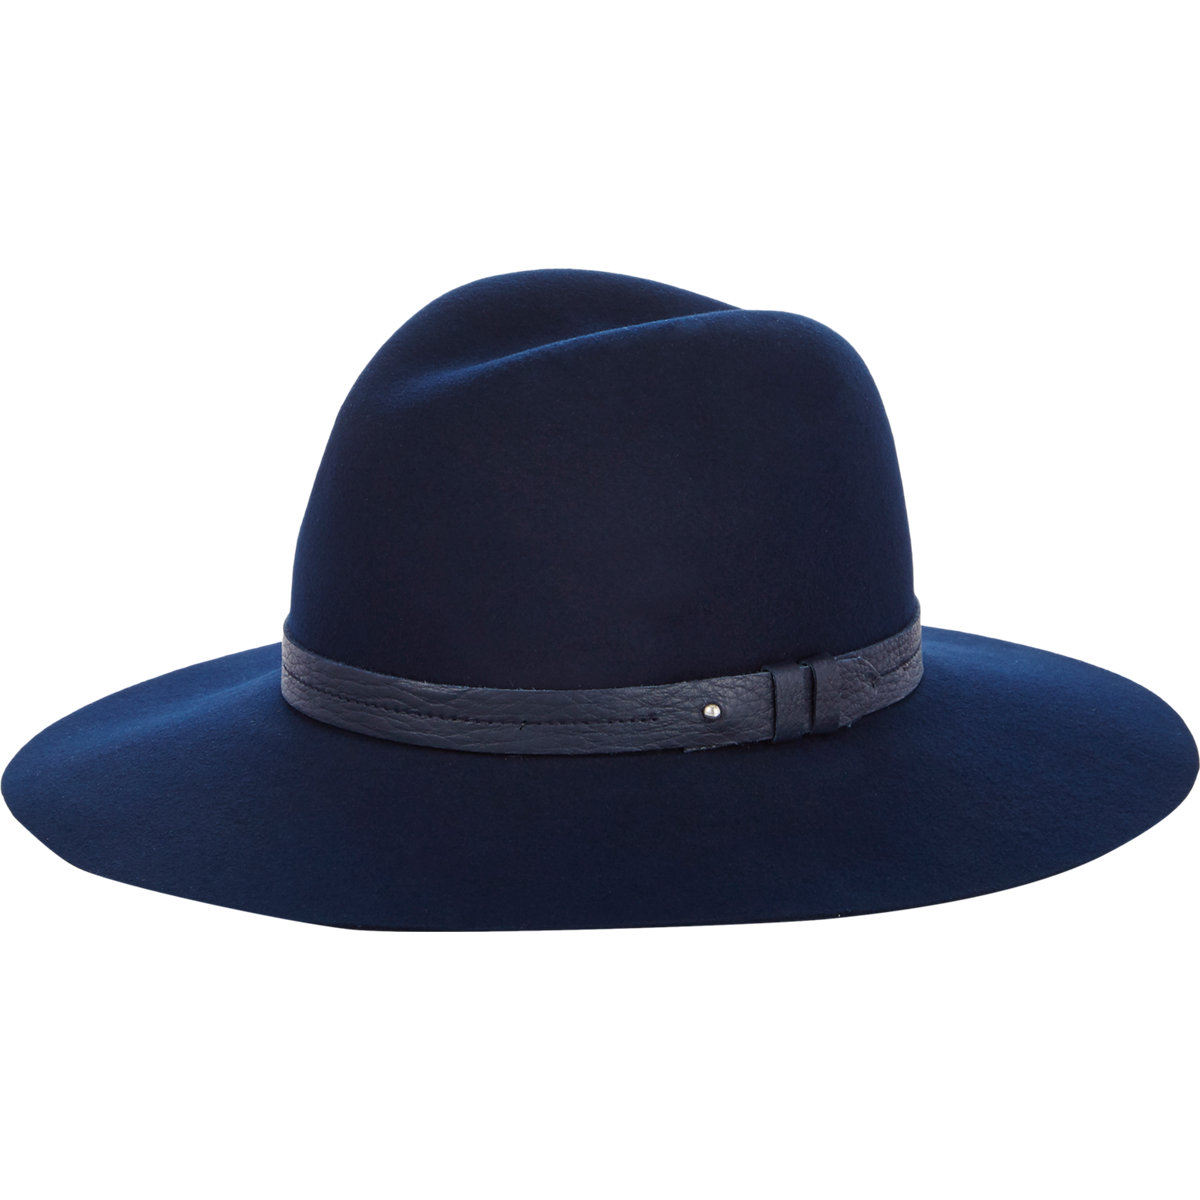 Rag & Bone Wide-Brim Fedora at Barneys.com